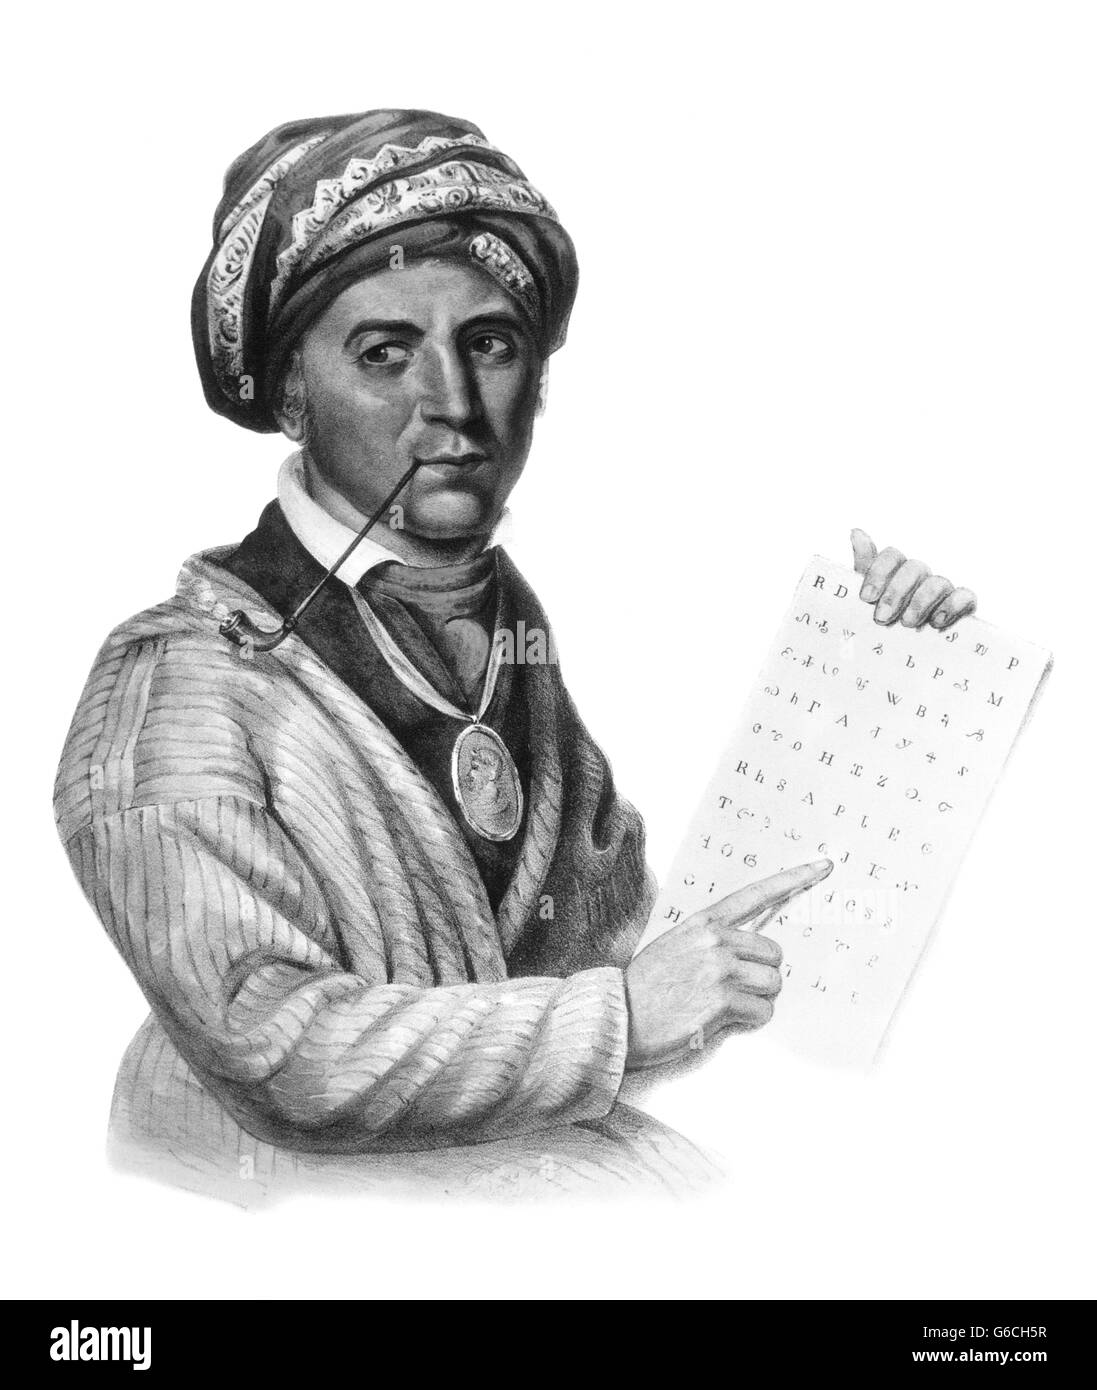 1790s 1800s PORTRAIT OF SEQUOYAH FAMOUS CHEROKEE INDIAN WHO INVENTED CHEROKEE SYLLABARY FROM PAINTING BY CHARLES - Stock Image